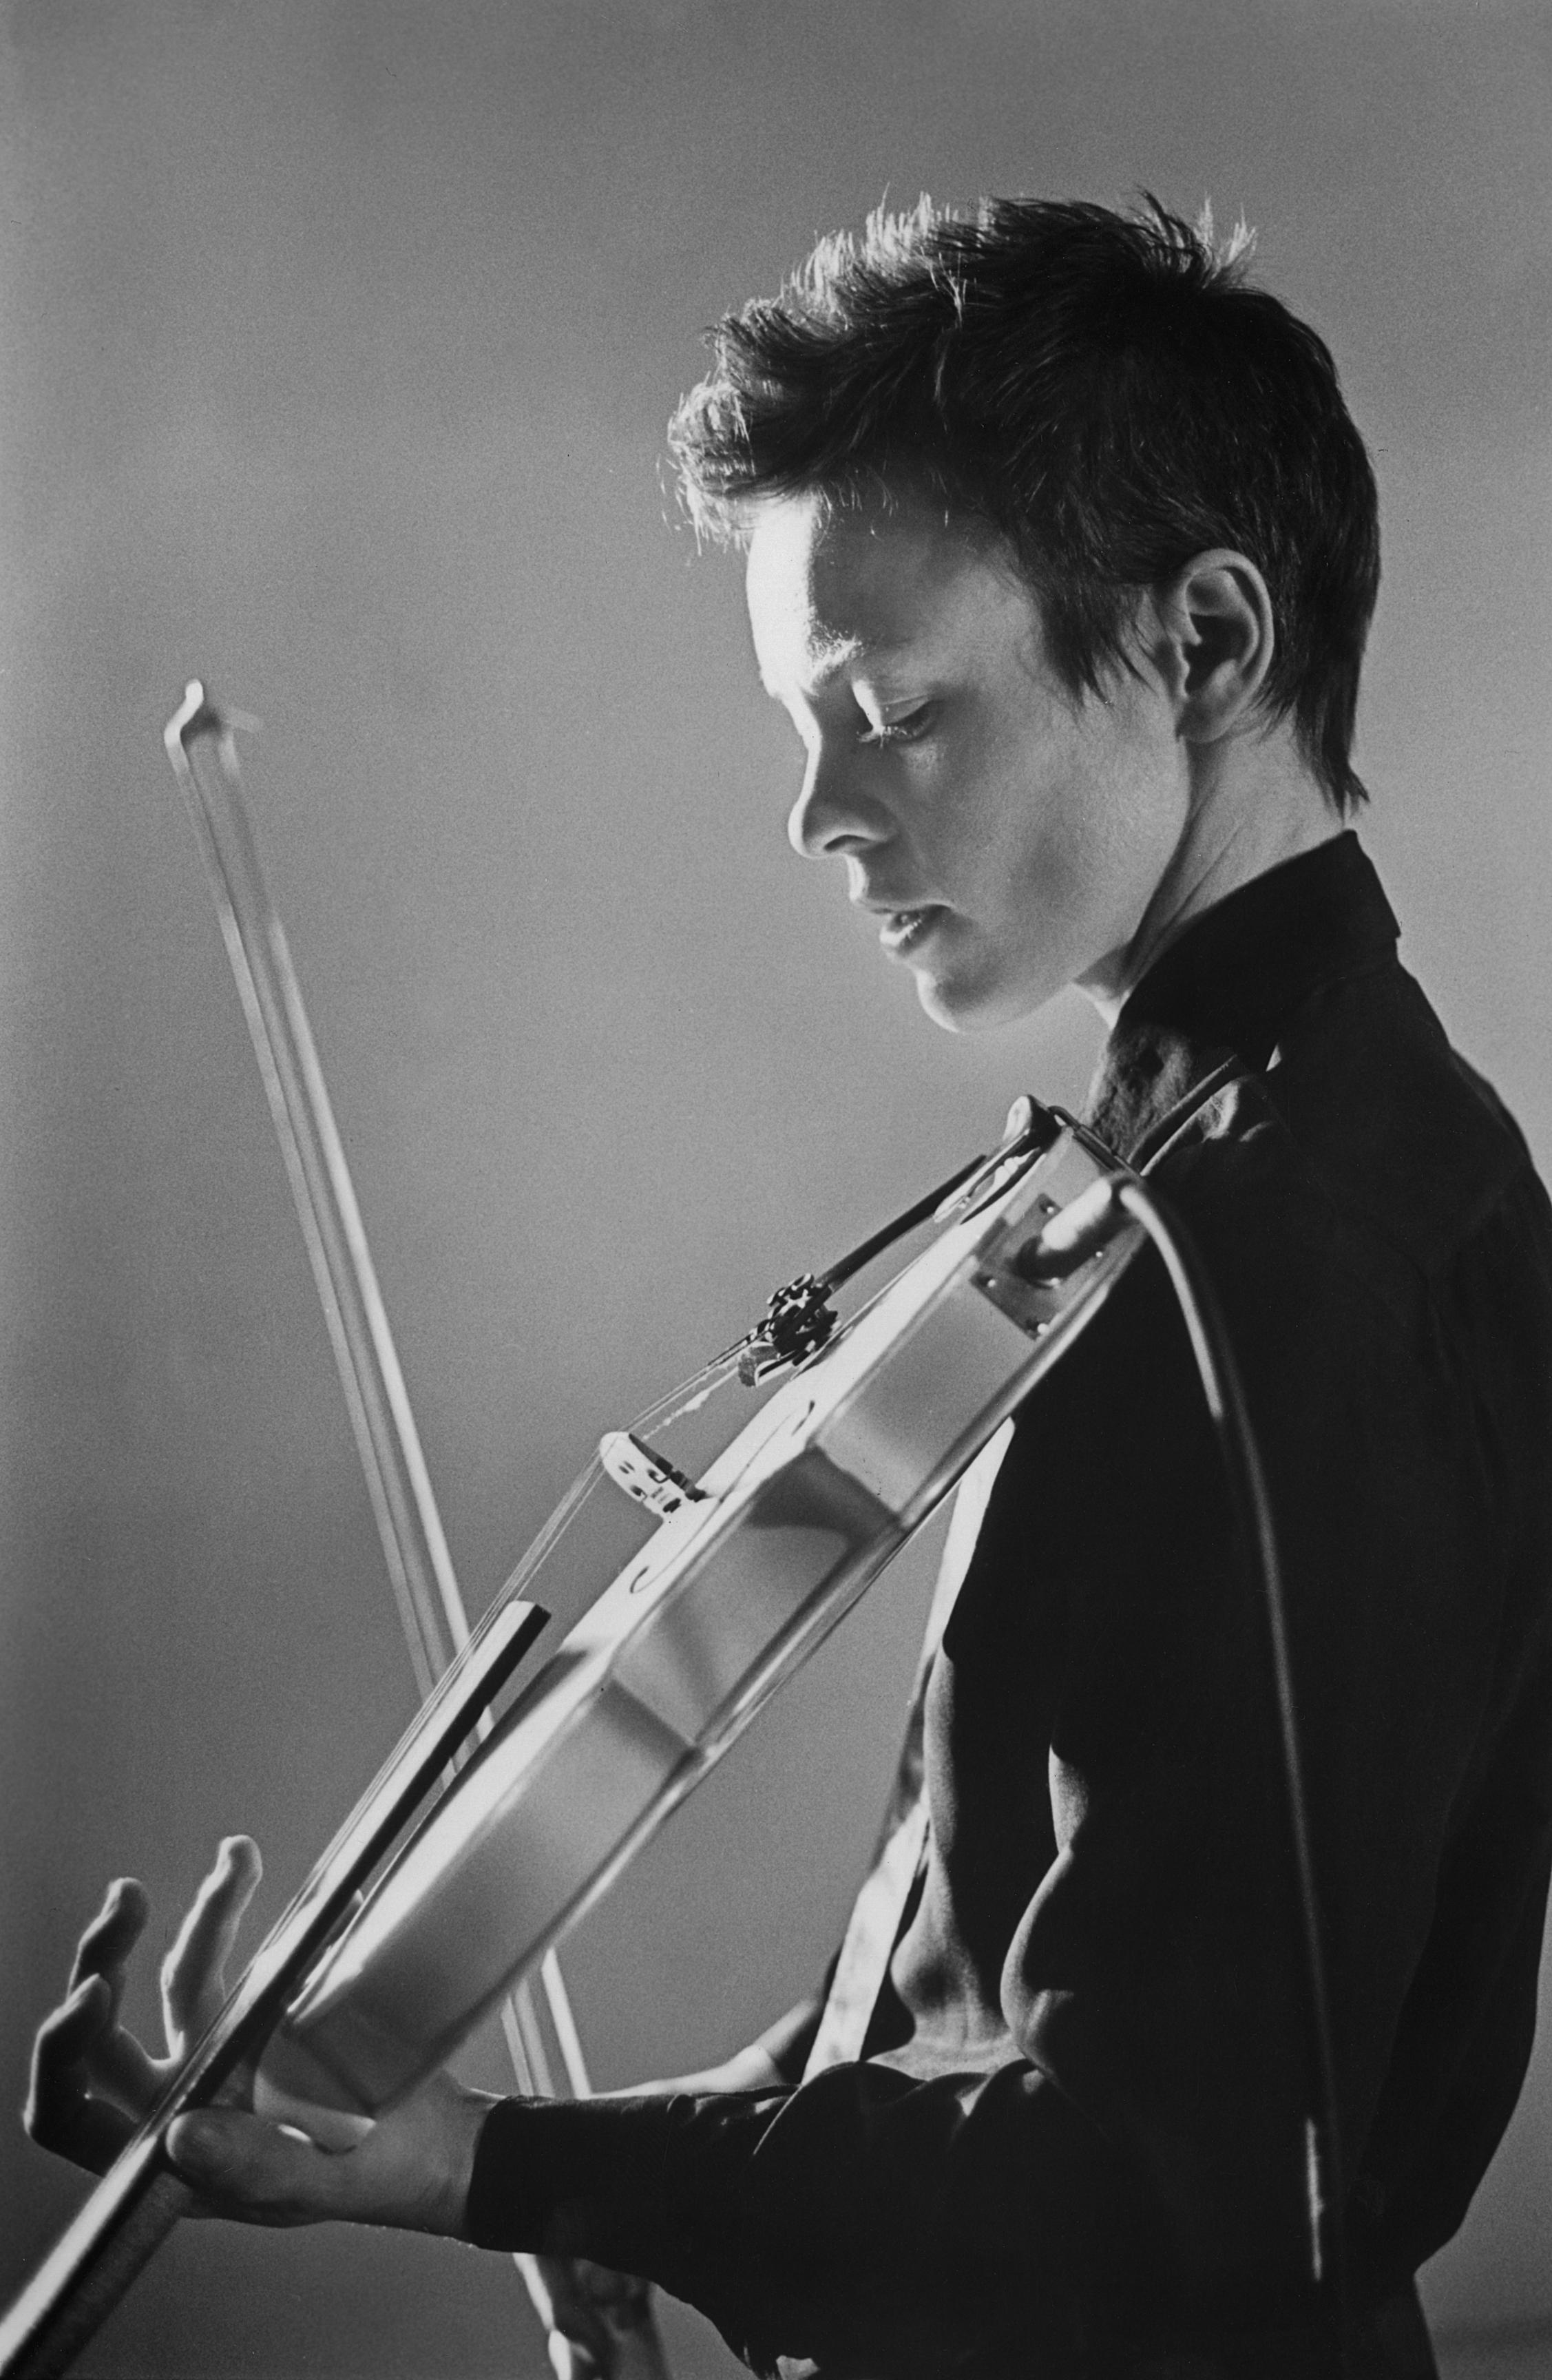 A black-and-white photograph of a youthful person with eyes closed holds a violin and bow, ready to play